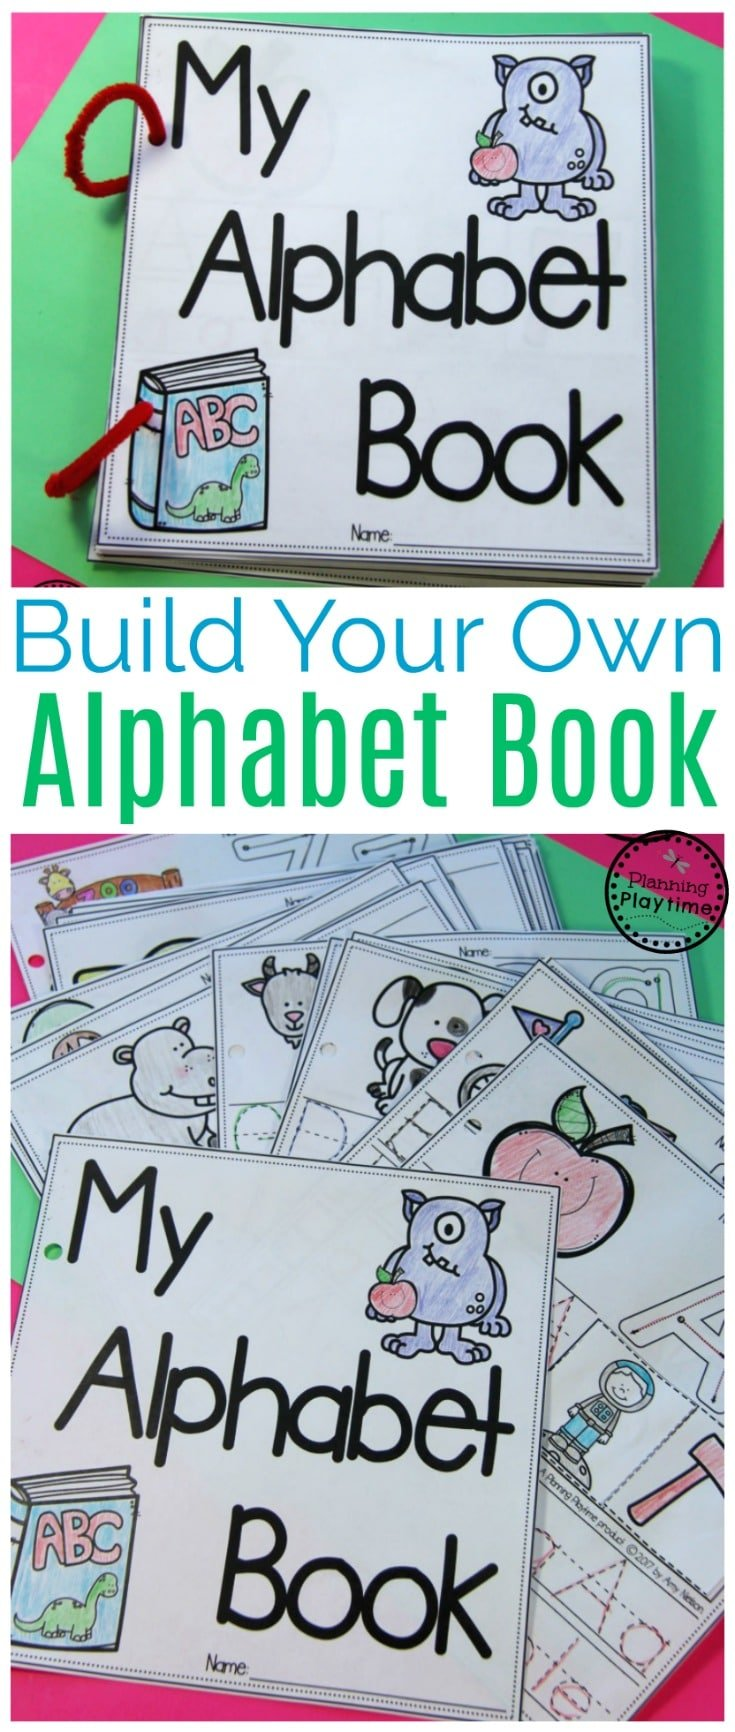 DIY Alphabet Books for Preschool or Kindergarten